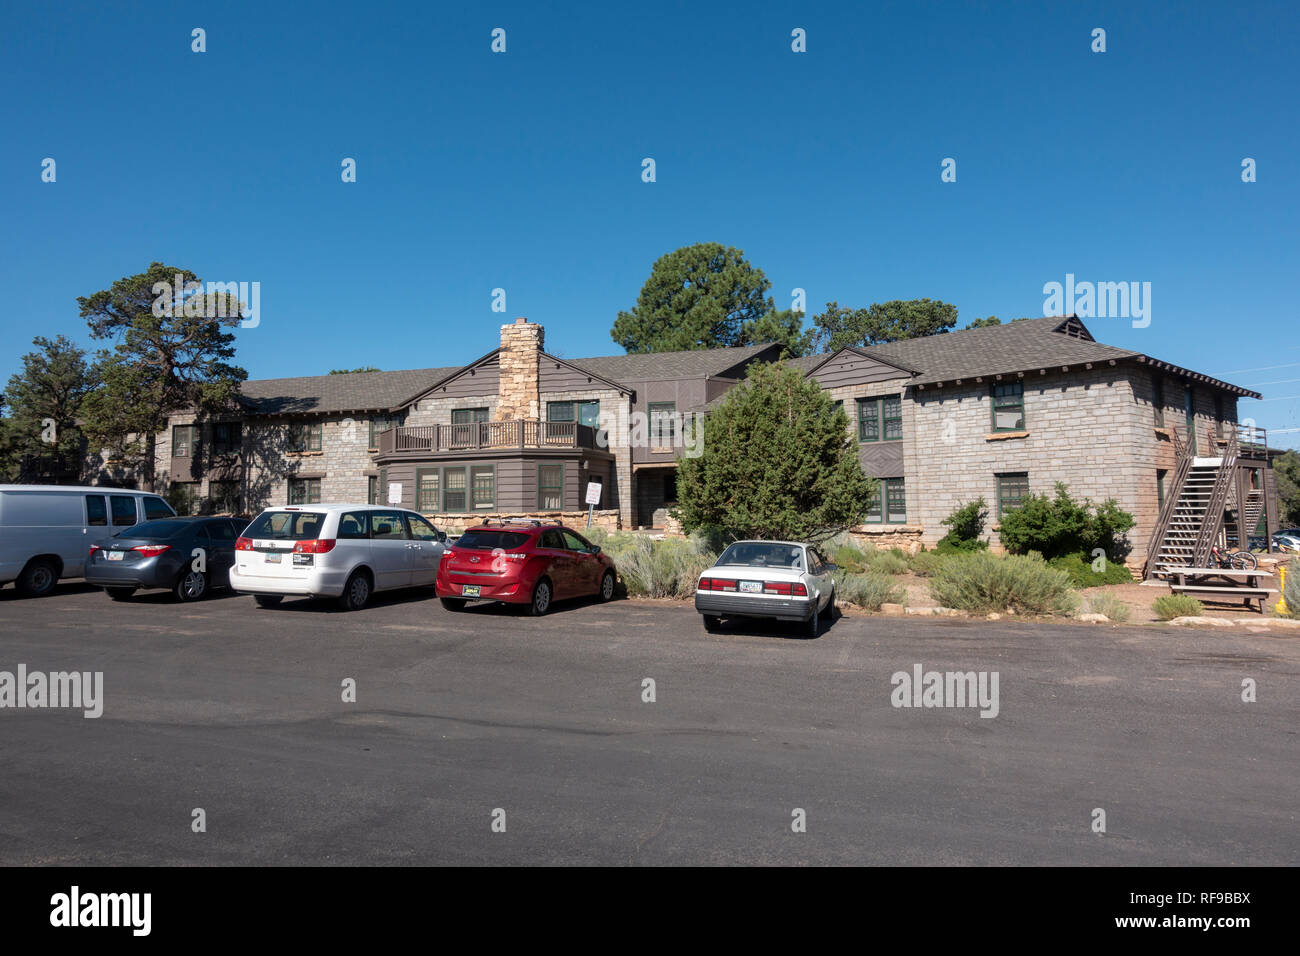 Victor Hall A Residential Building The Grand Canyon Village Grand Canyon National Park Arizona United States Stock Photo Alamy